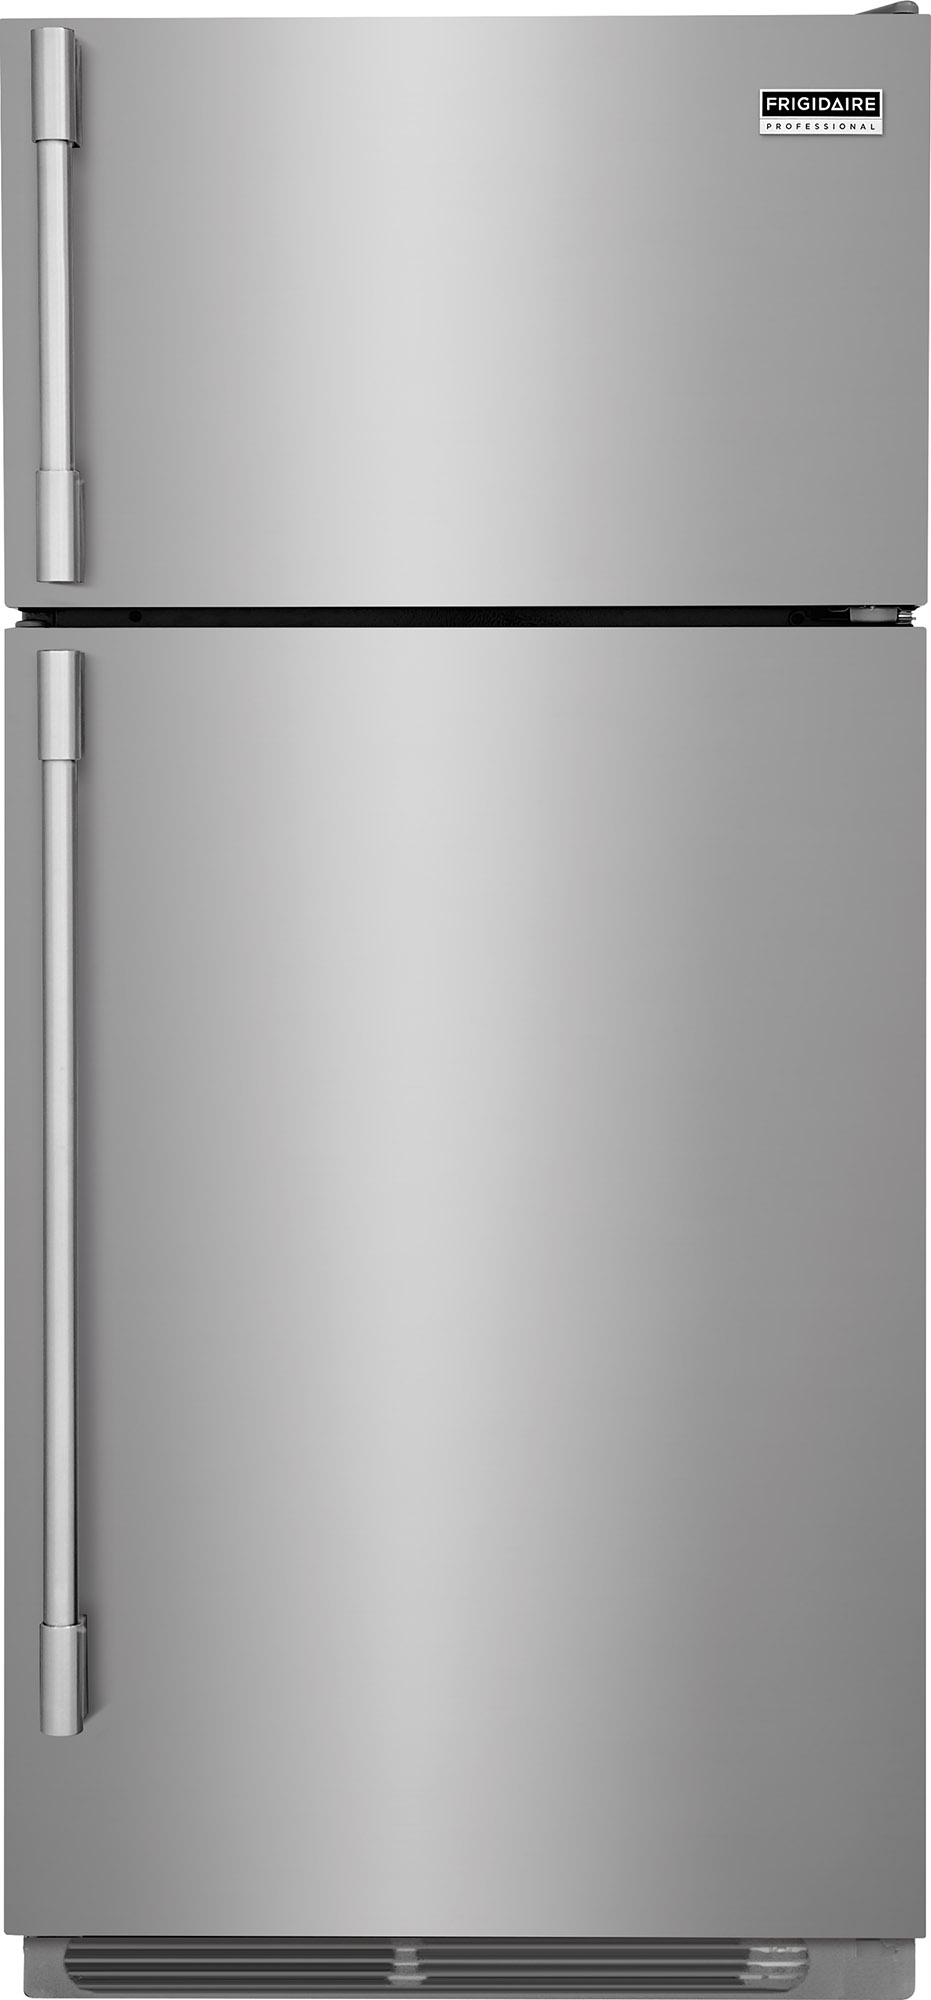 Stainless Steel Fpht1897tf Frigidaire Professional 18 Cu Ft Top Freezer Refrigerator Smudge Proof